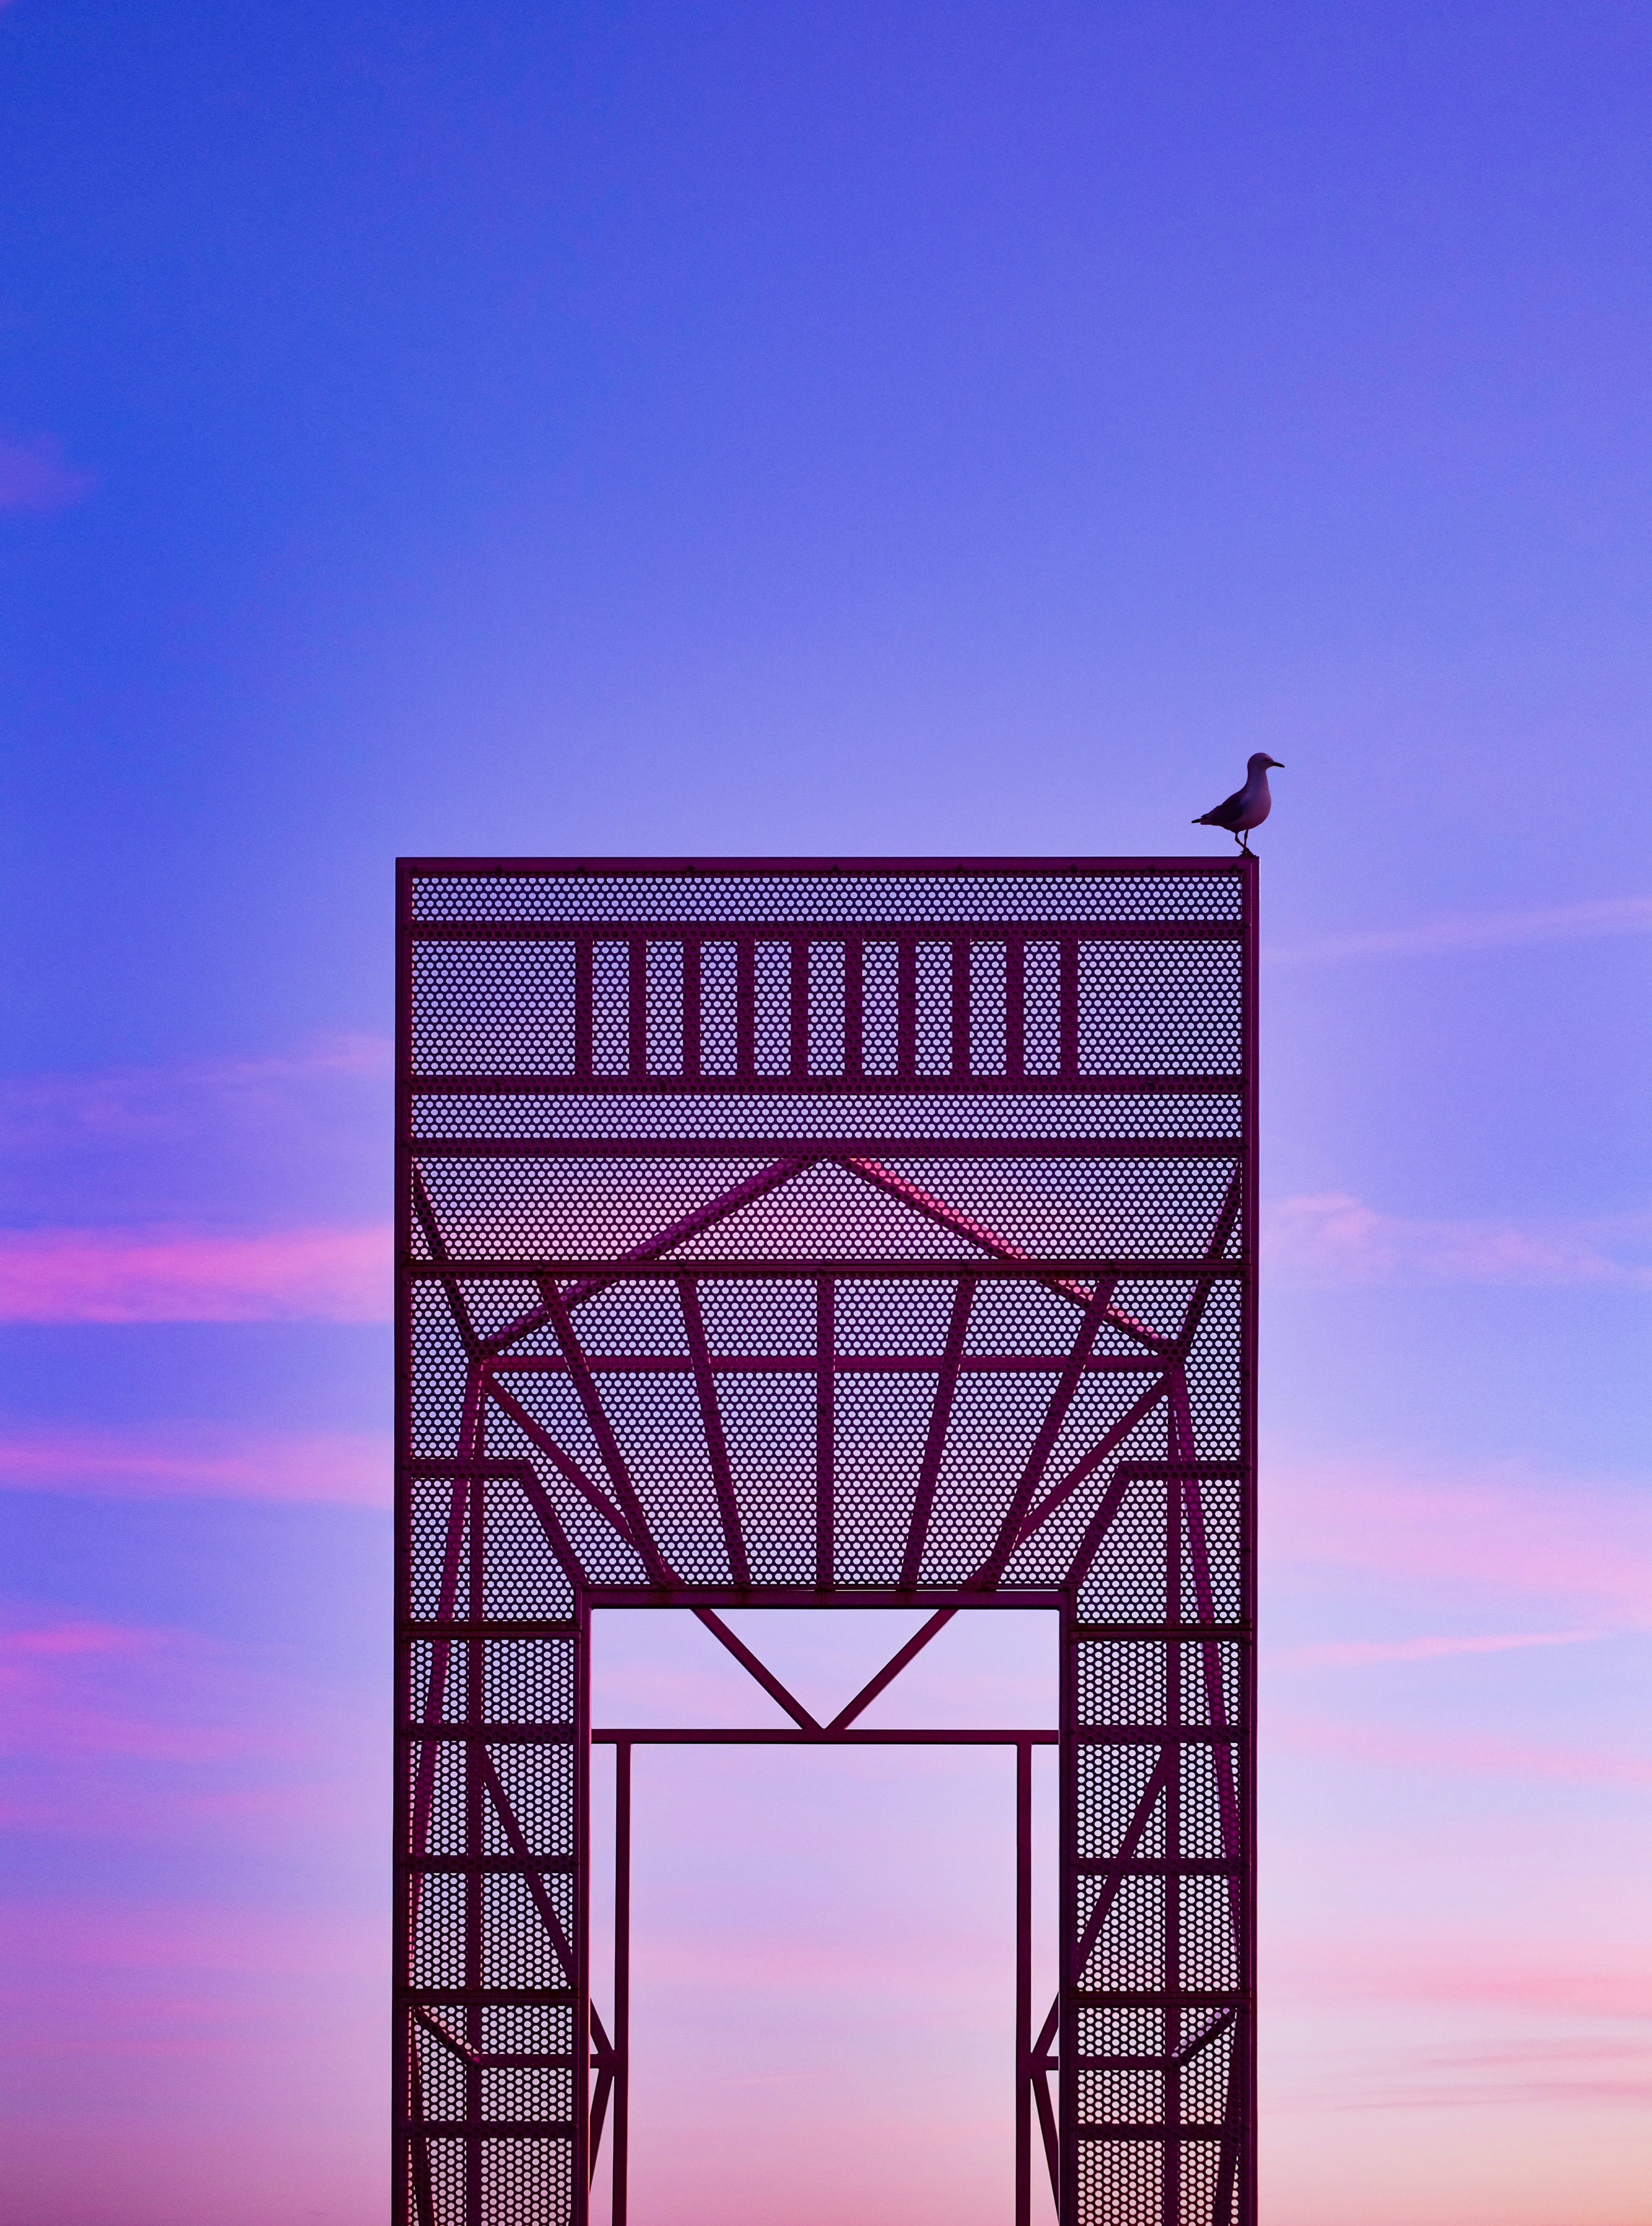 black bird on top of red steel structure